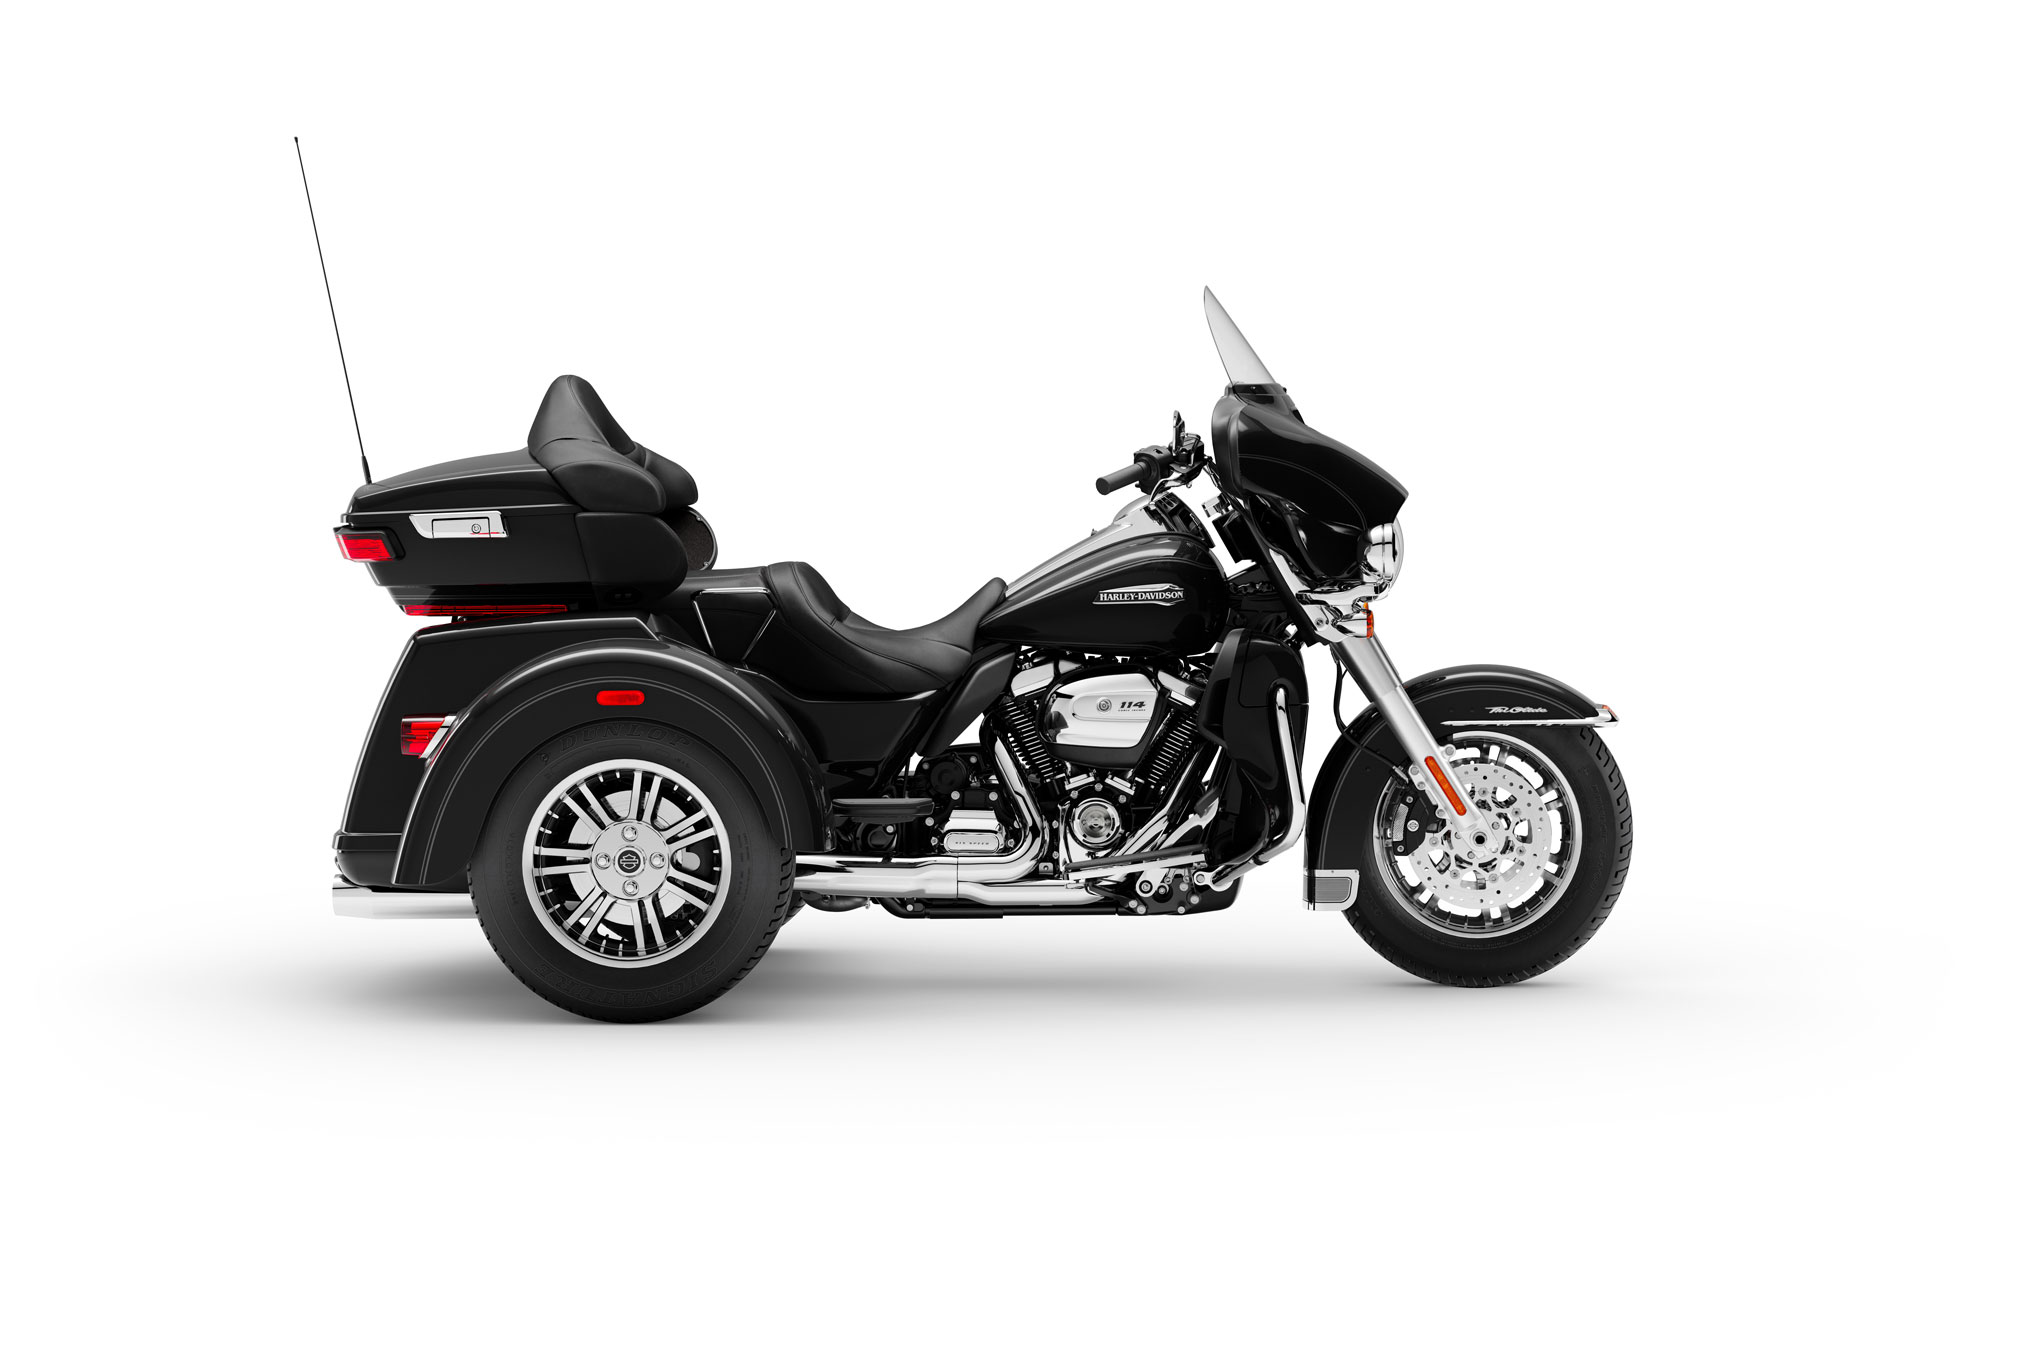 2019 Harley-Davidson Tri Glide Ultra Guide • Total Motorcycle on harley handlebar wiring diagram, harley flh wiring harness diagram, 2008 harley wiring diagram, harley-davidson softail wiring diagram, 2006 harley davidson wiring diagram, harley brake light wiring diagram, harley davidson chopper wiring diagram, 2007 harley davidson wiring diagram, 1990 harley wiring diagram, harley-davidson radio wiring diagram, harley controls wiring diagram, 1999 harley softail wiring diagram, 2009 harley davidson tires, 2009 harley davidson ford, 94 harley softail wiring diagram, harley ignition switch wiring diagram, 2009 harley davidson exhaust, harley-davidson coil wiring diagram, harley-davidson wiring harness diagram,